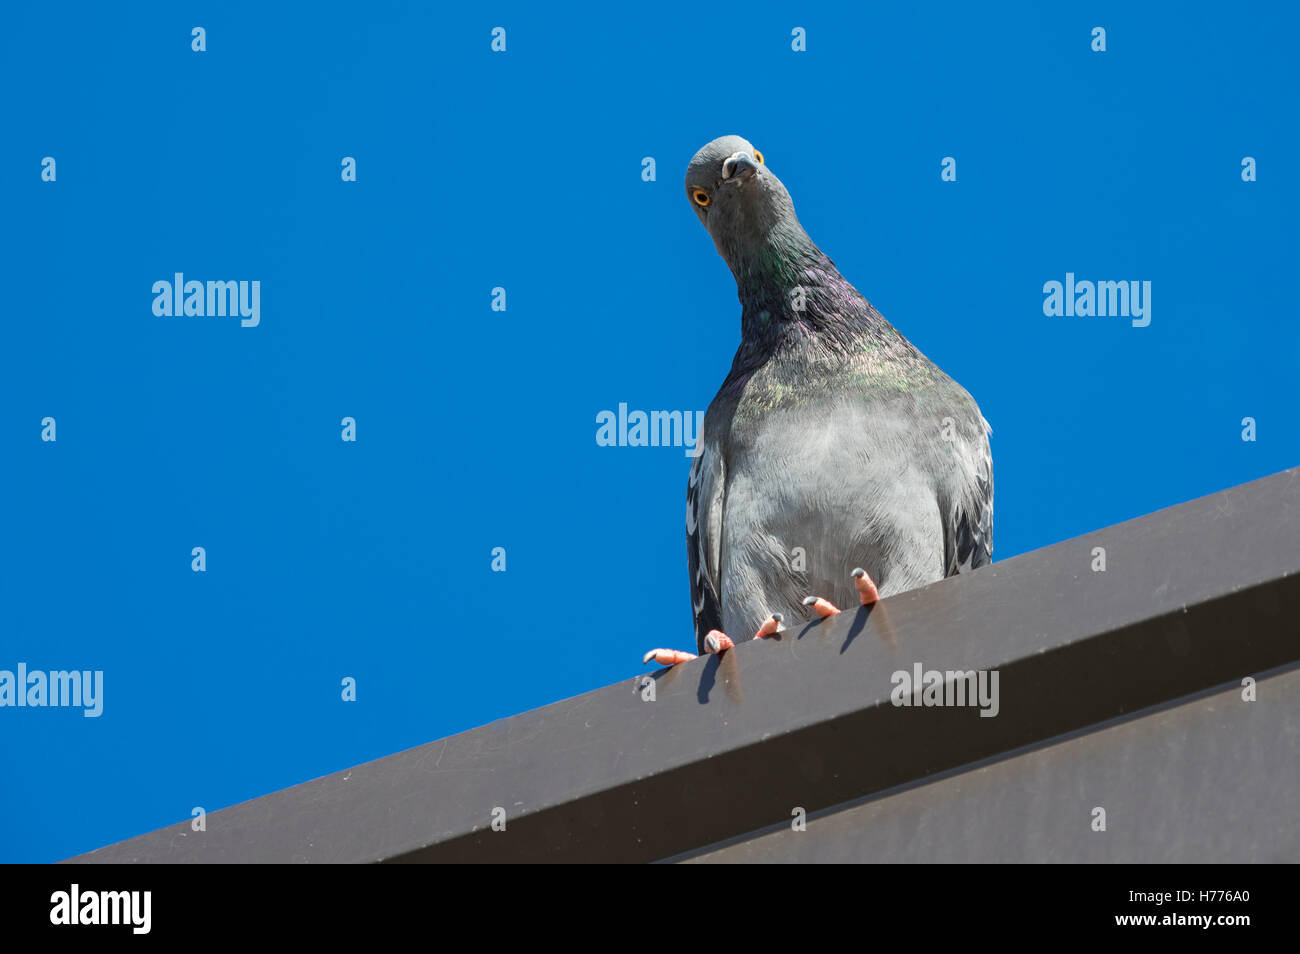 Street pigeon (Columba livia domestica) looking down with tilted head, perceived as curious or mischievous look. - Stock Image